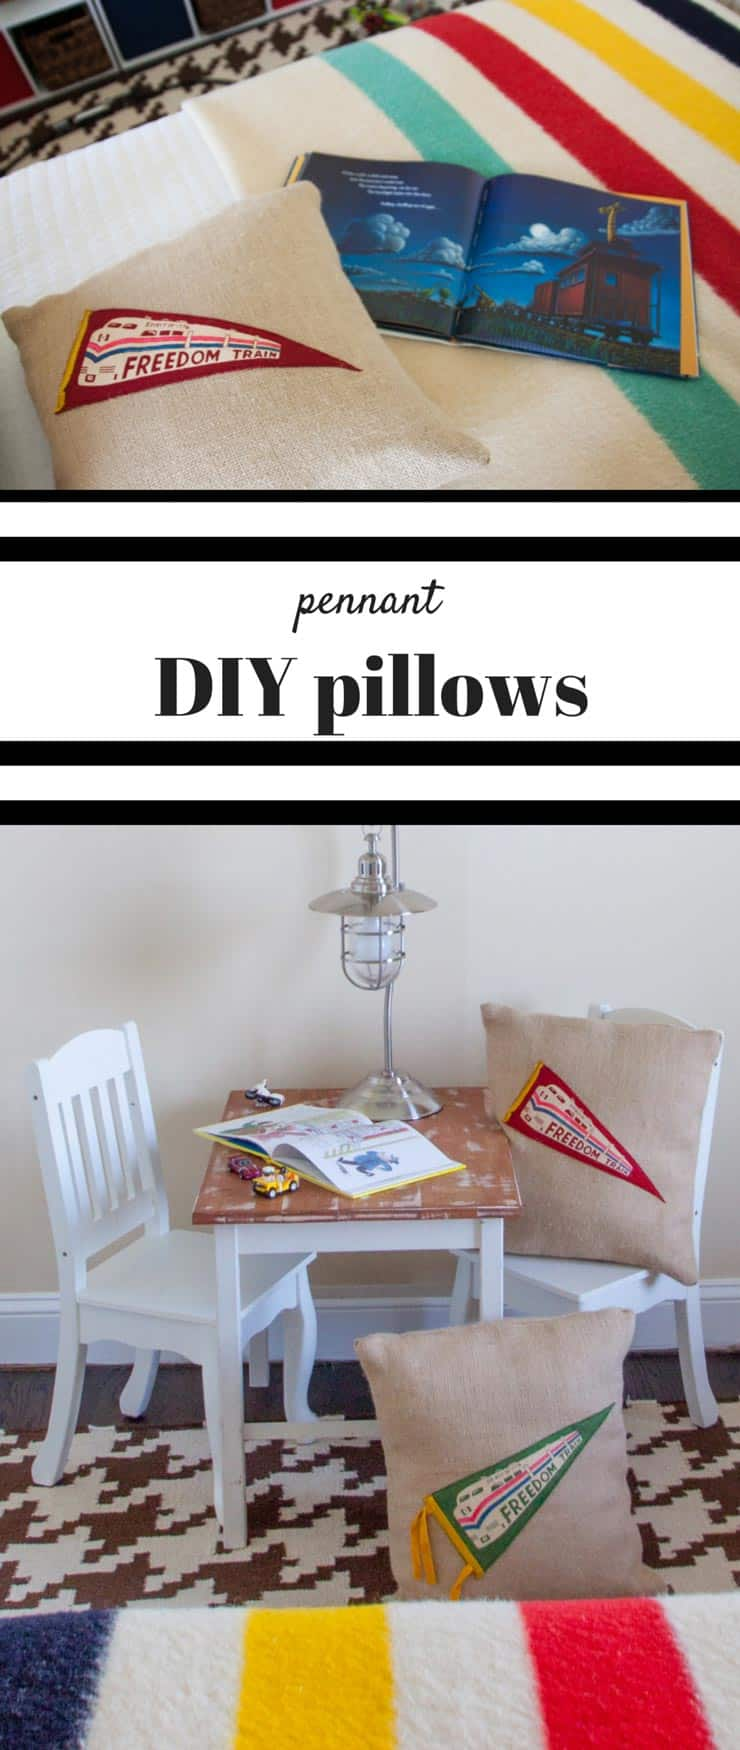 EASY & INEXPENSIVE! These DIY pillows with pennants are a GREAT way to personalize a space! Sew and no-sew options! from www.heatherednest.com